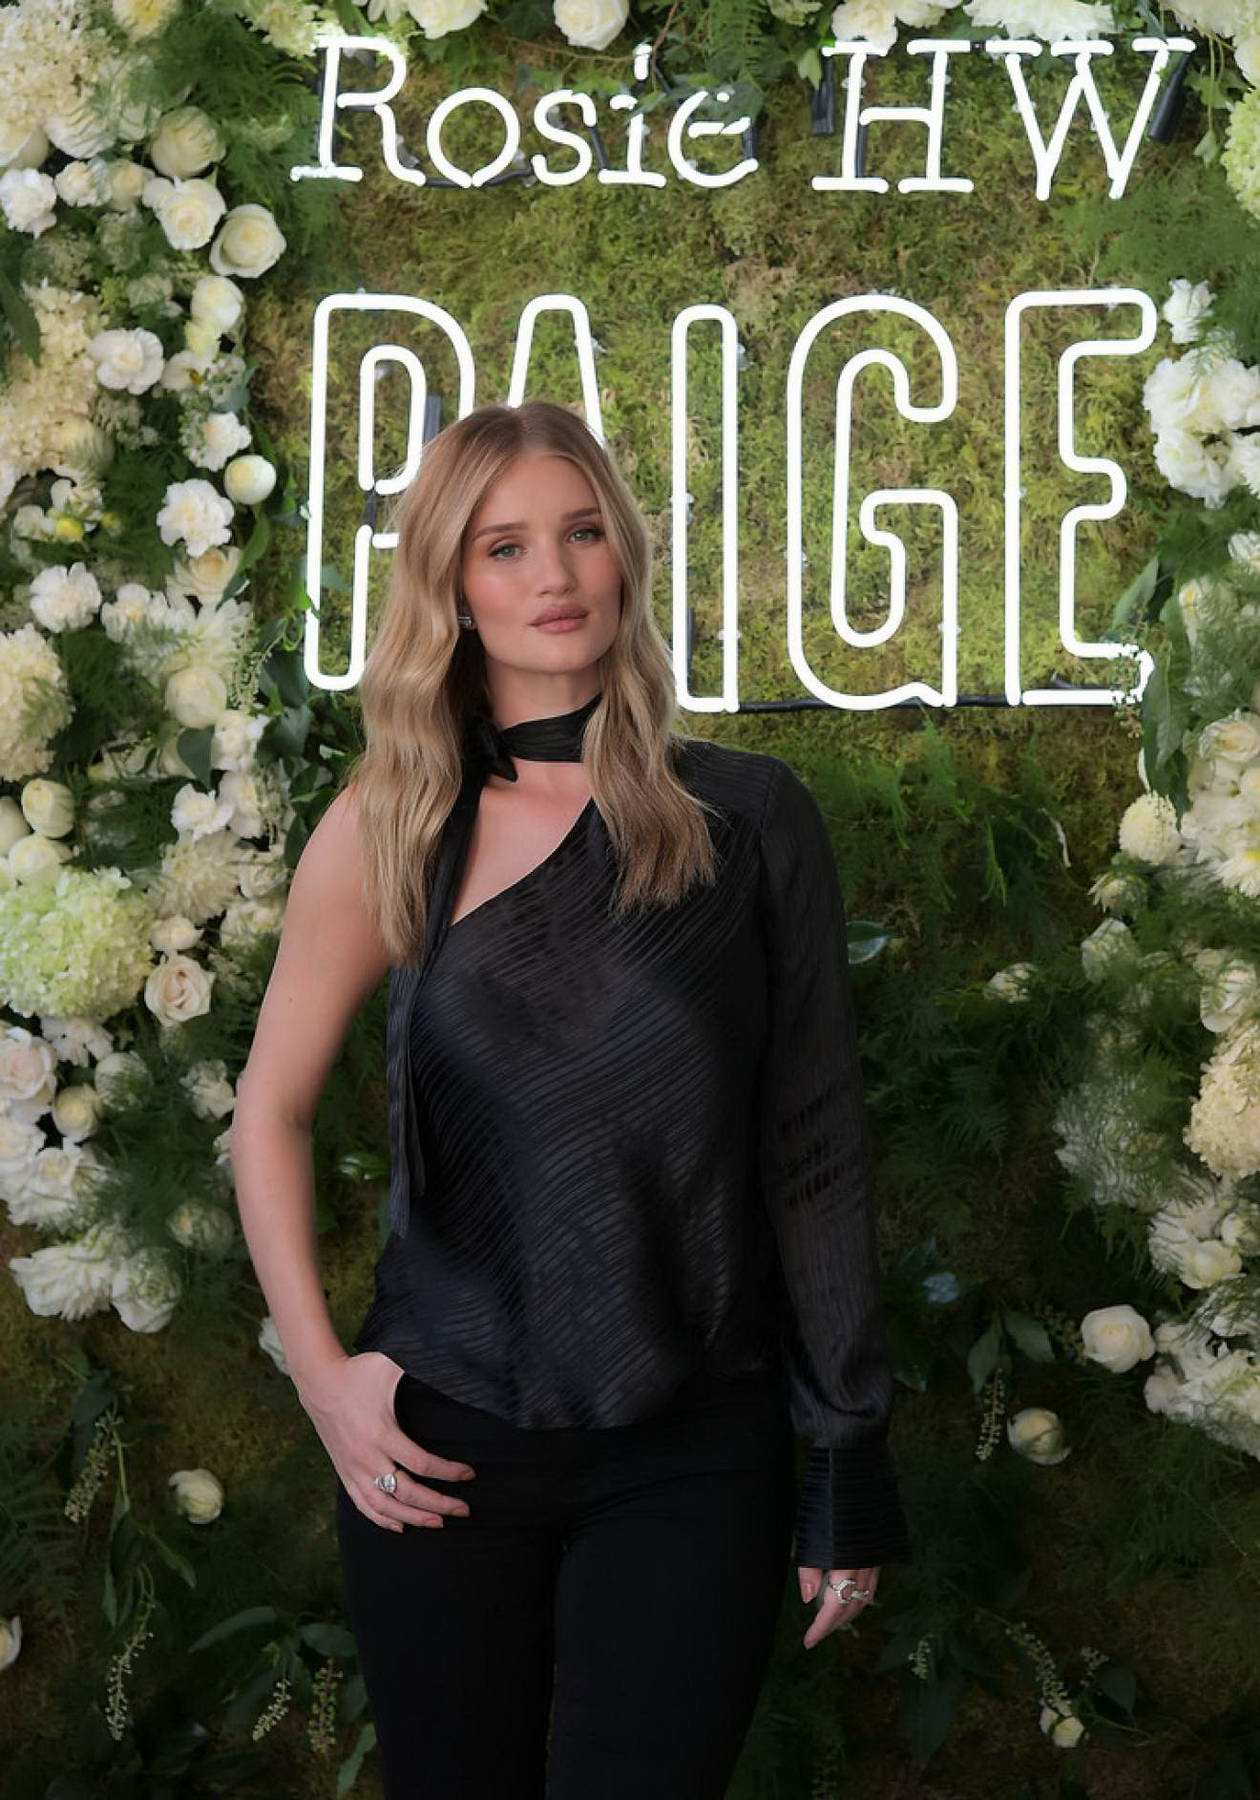 Rosie Huntington-Whiteley at Rosie HW x Paige Fall Collection 2017 launch in Los Angeles